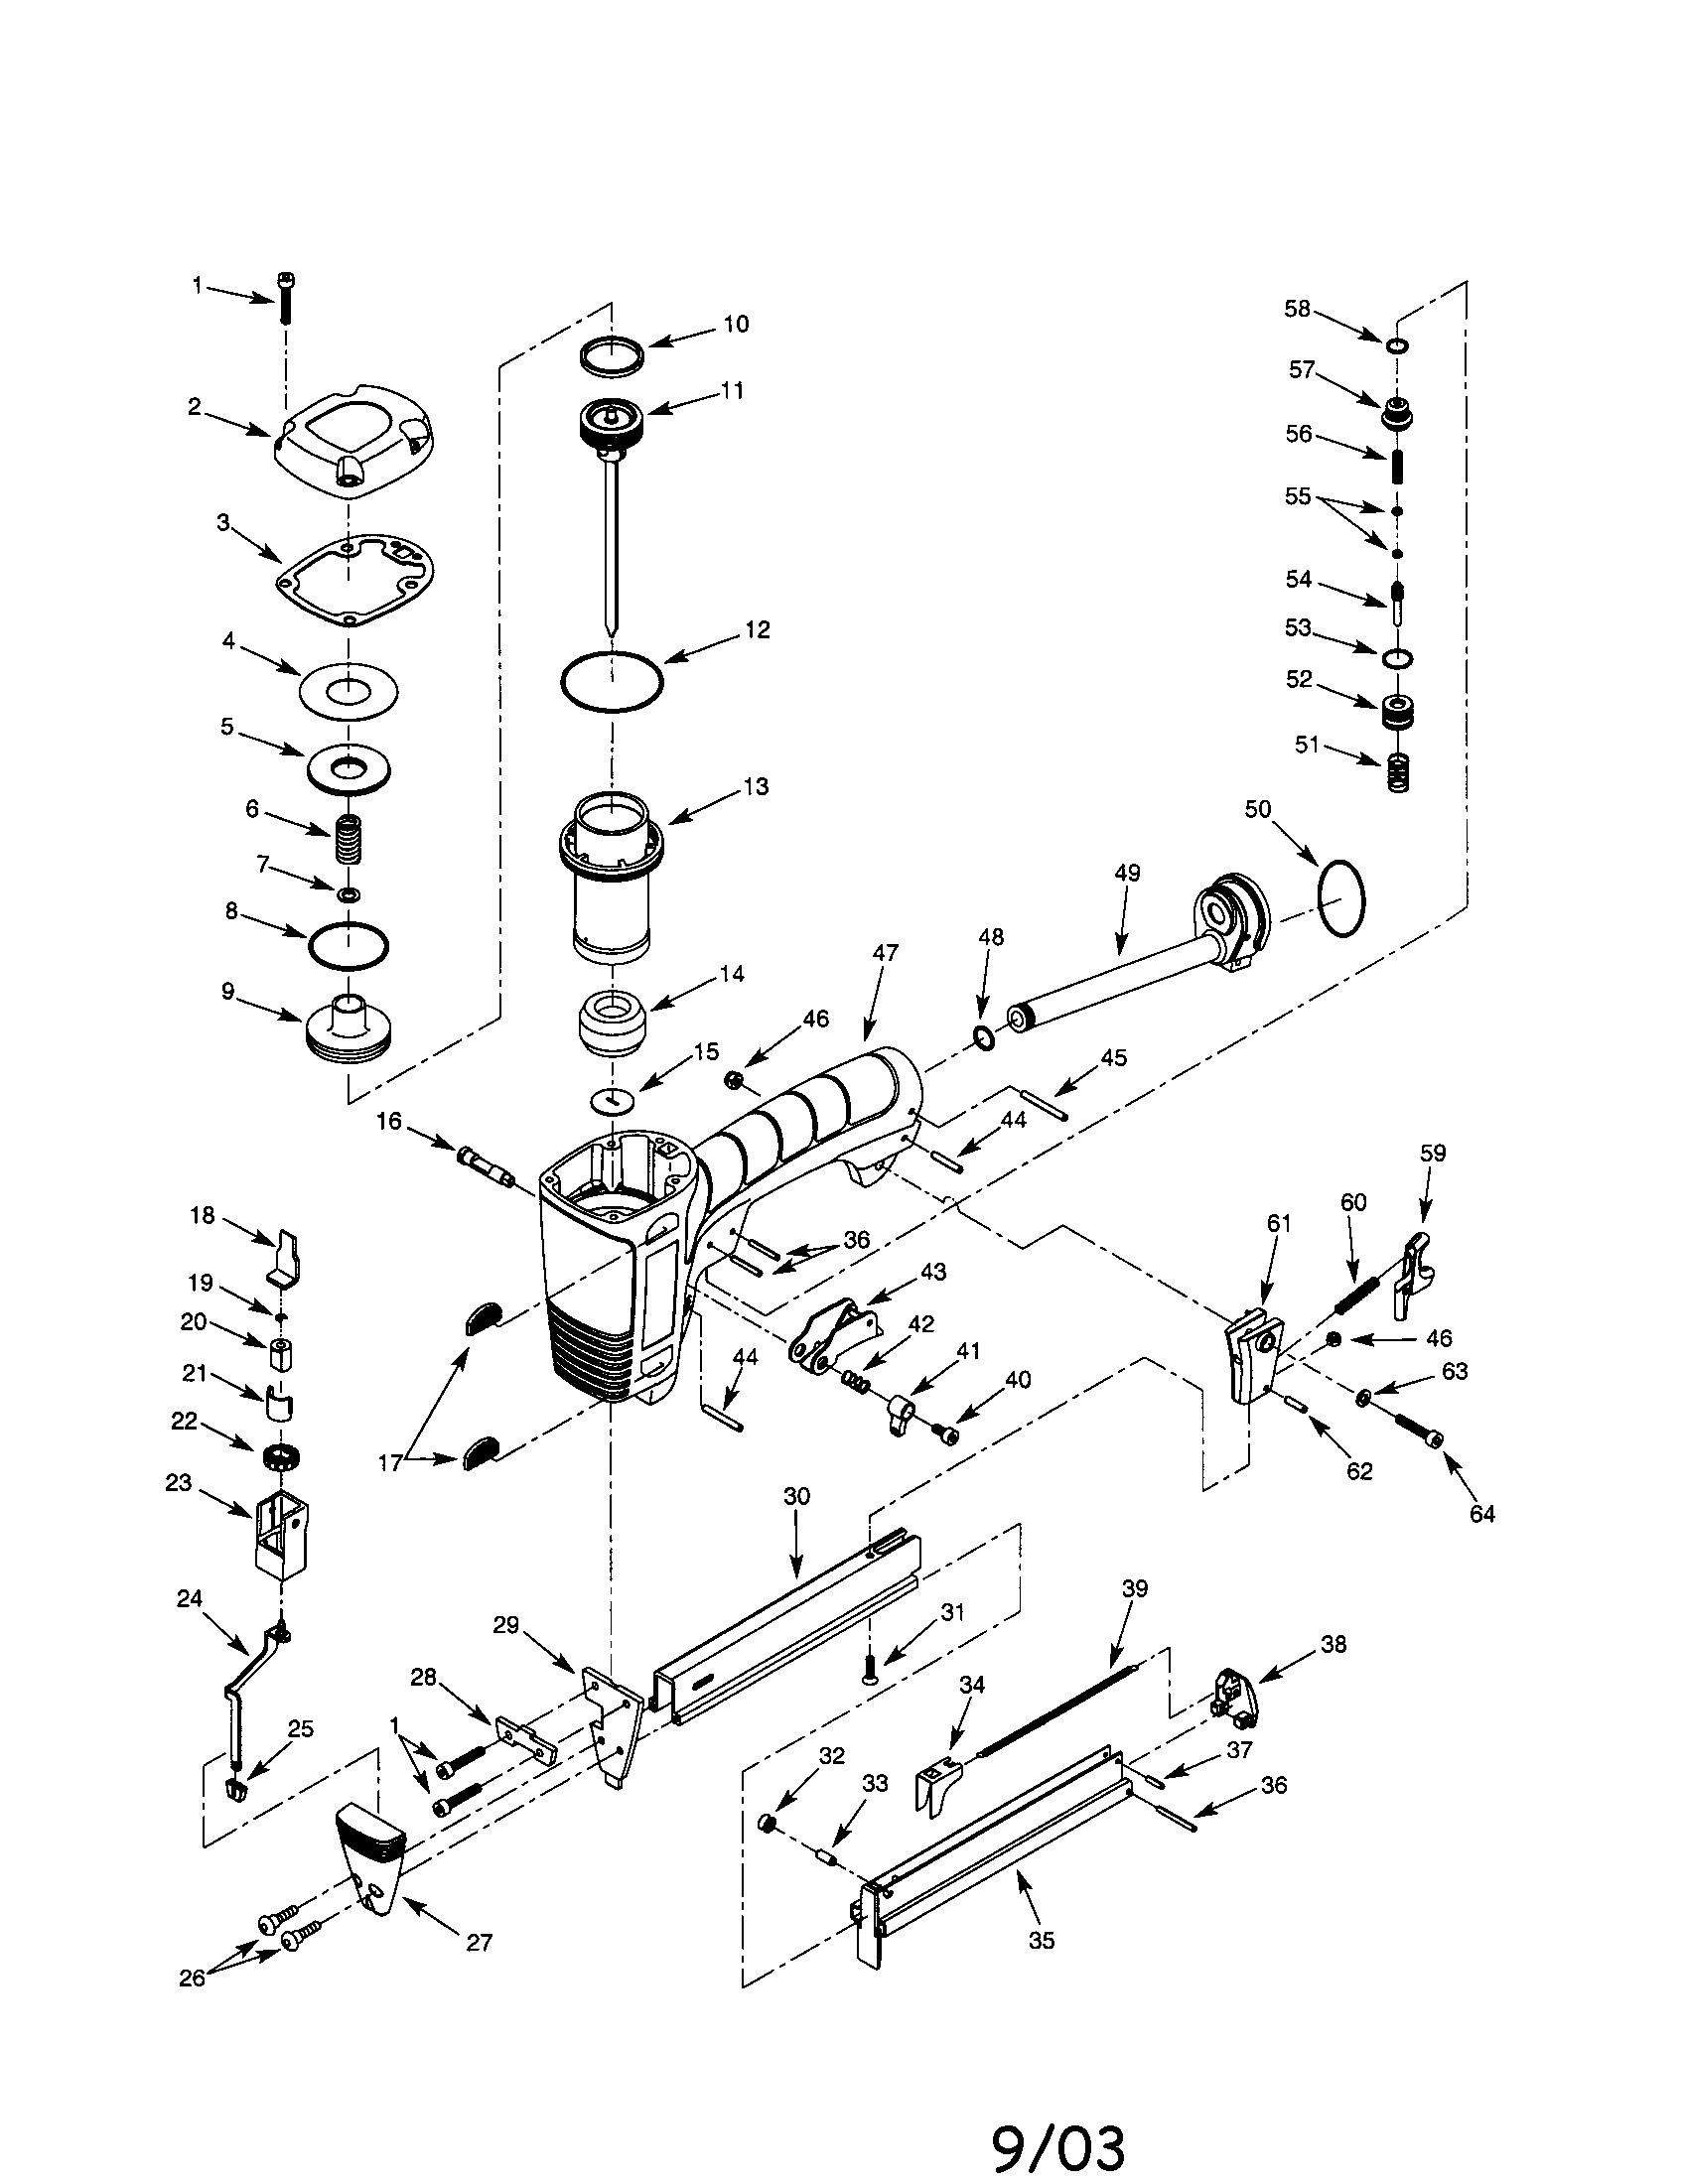 STAPLER Diagram & Parts List for Model 351181700 Craftsman